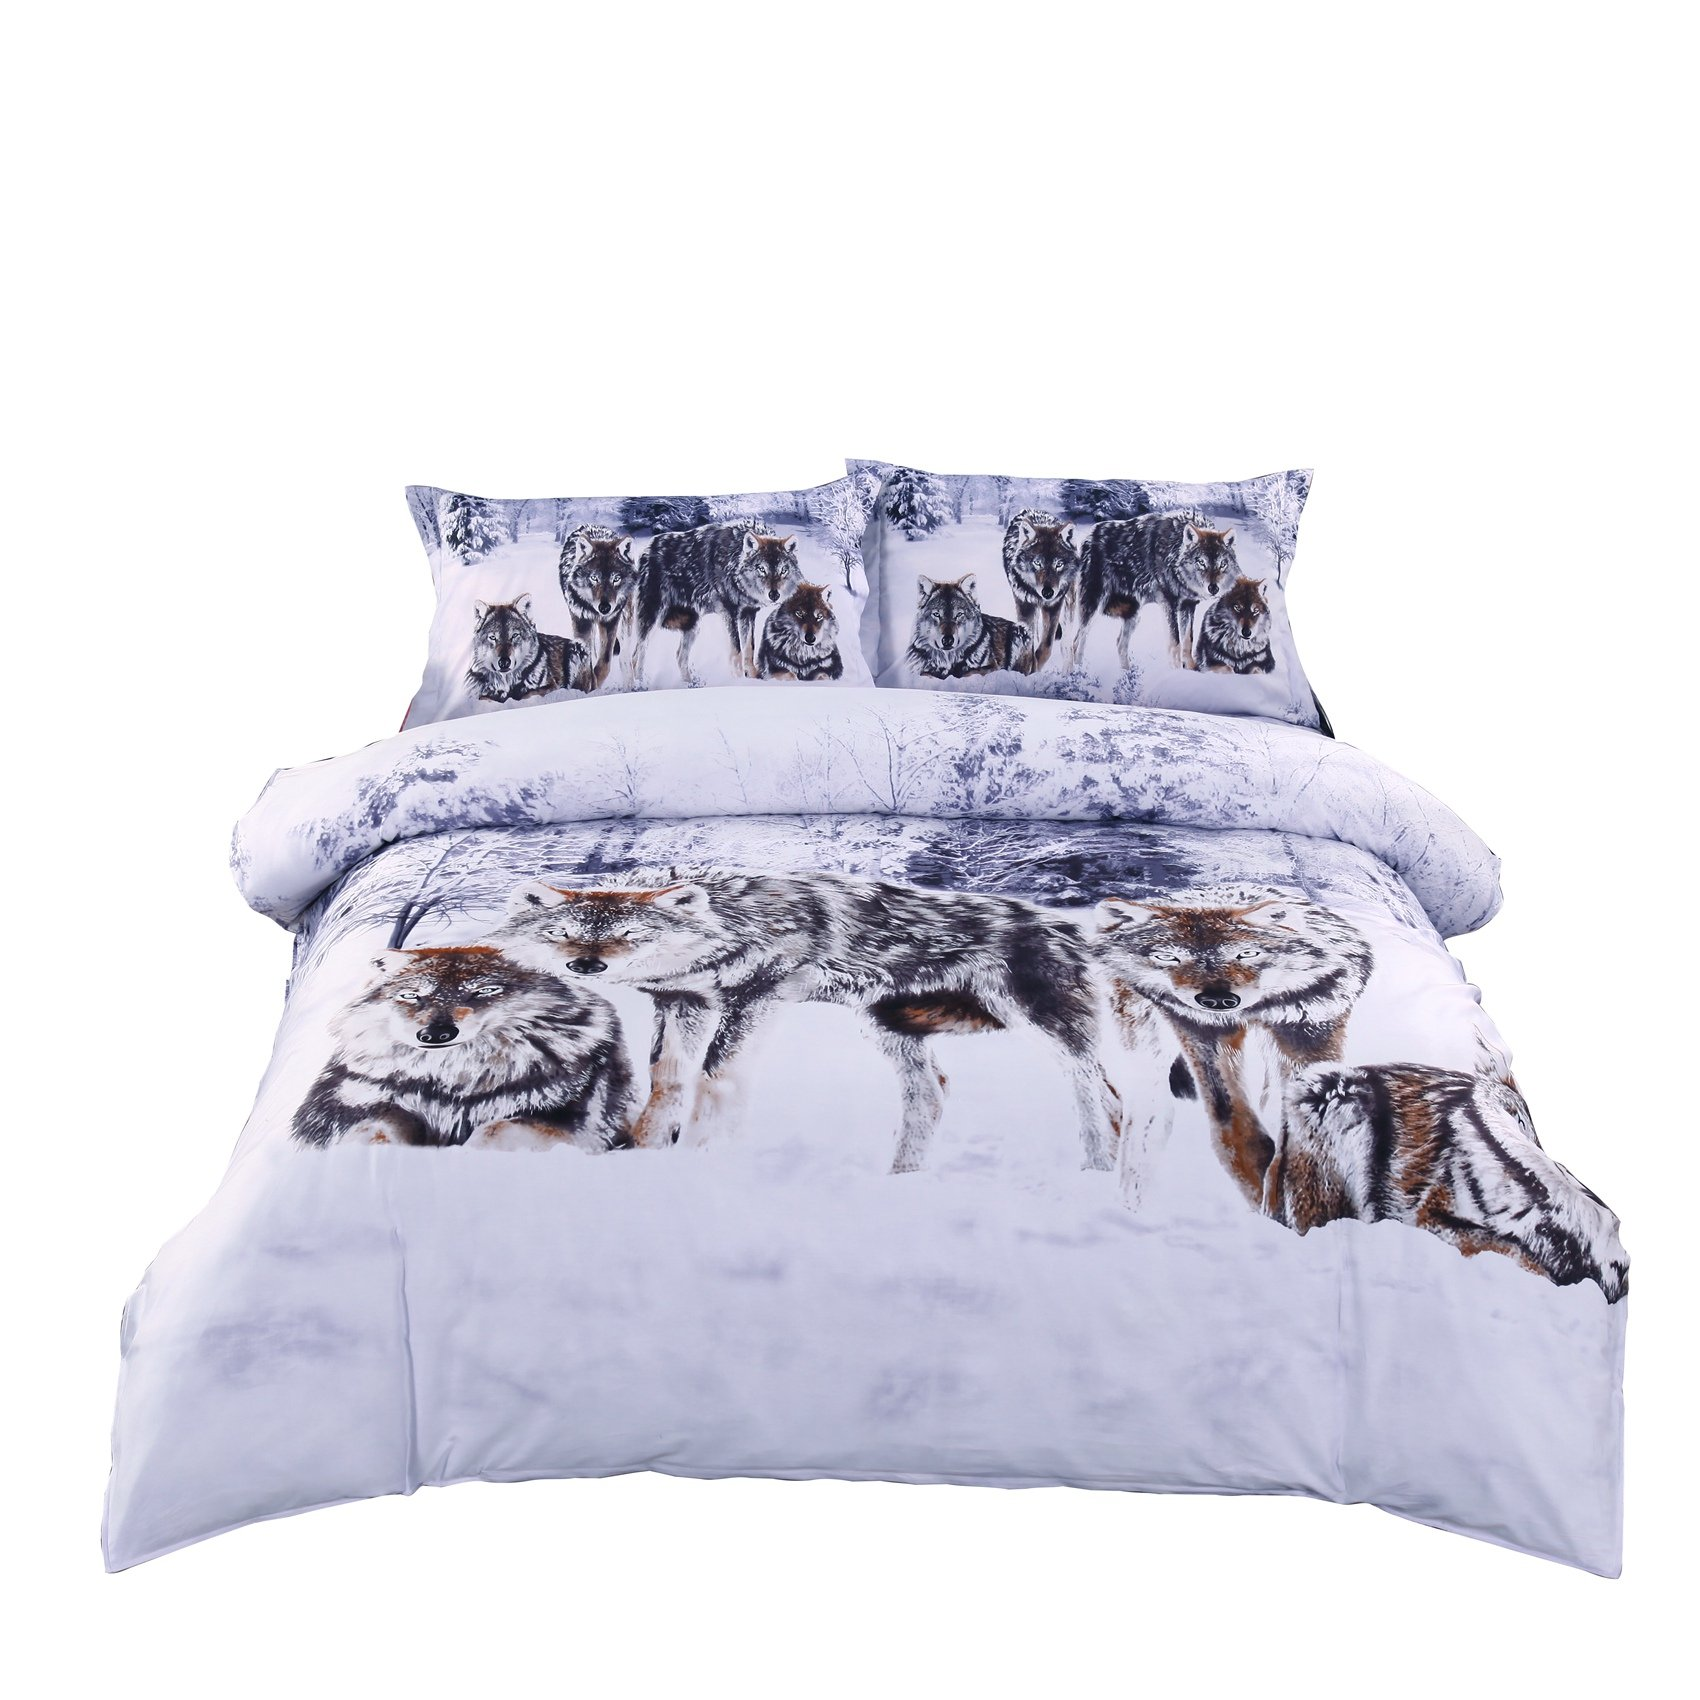 Alicemall Wolf Bedding 3D Snow Wolf in the Woods Print 100% Cotton 4 Piece Duvet Cover Sets, Wolf Print Bedroom Sheet Set, Queen Size (Queen)